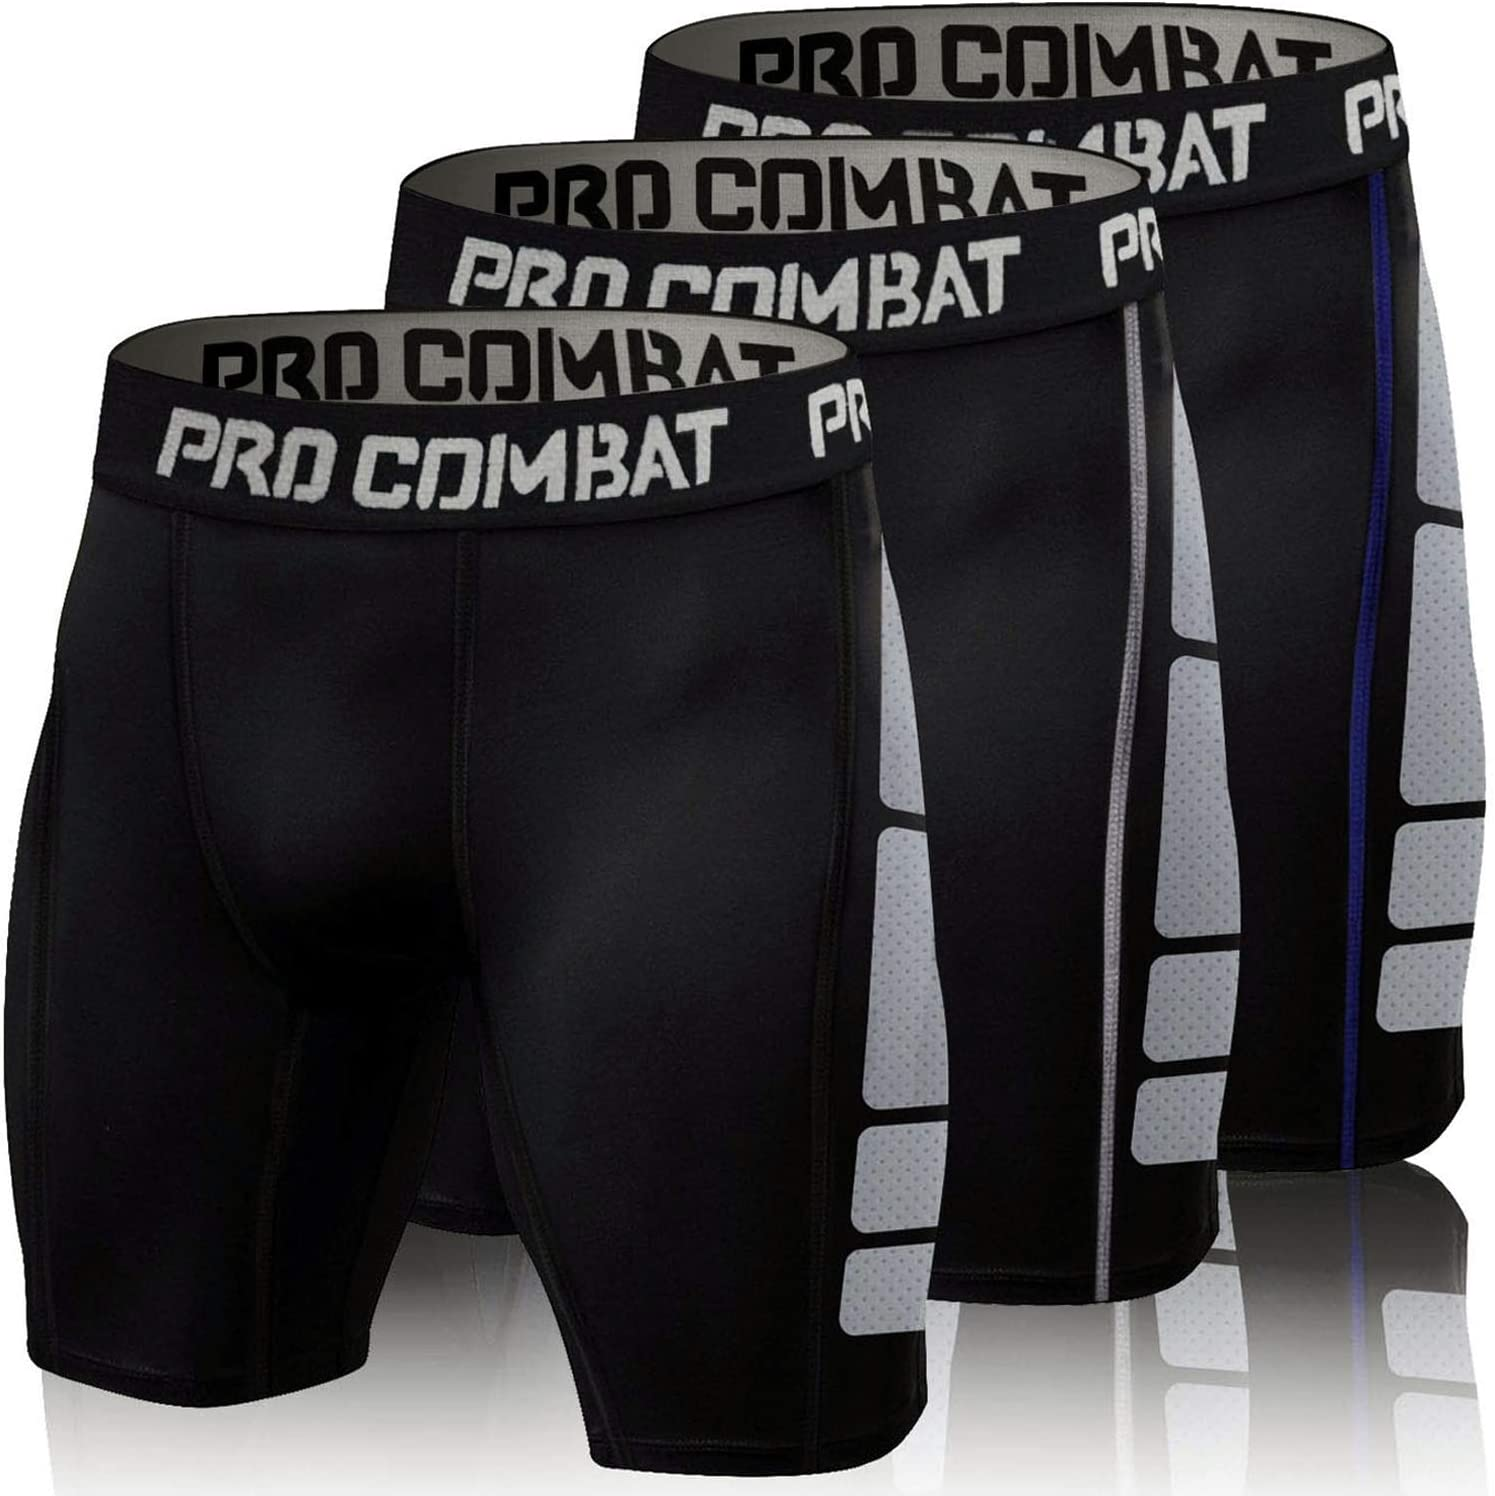 Men's Compression Shorts 3 Pack Quick Dry Sports Tight Shorts Soft Running Pants for Workouts, Training, Gym: Clothing